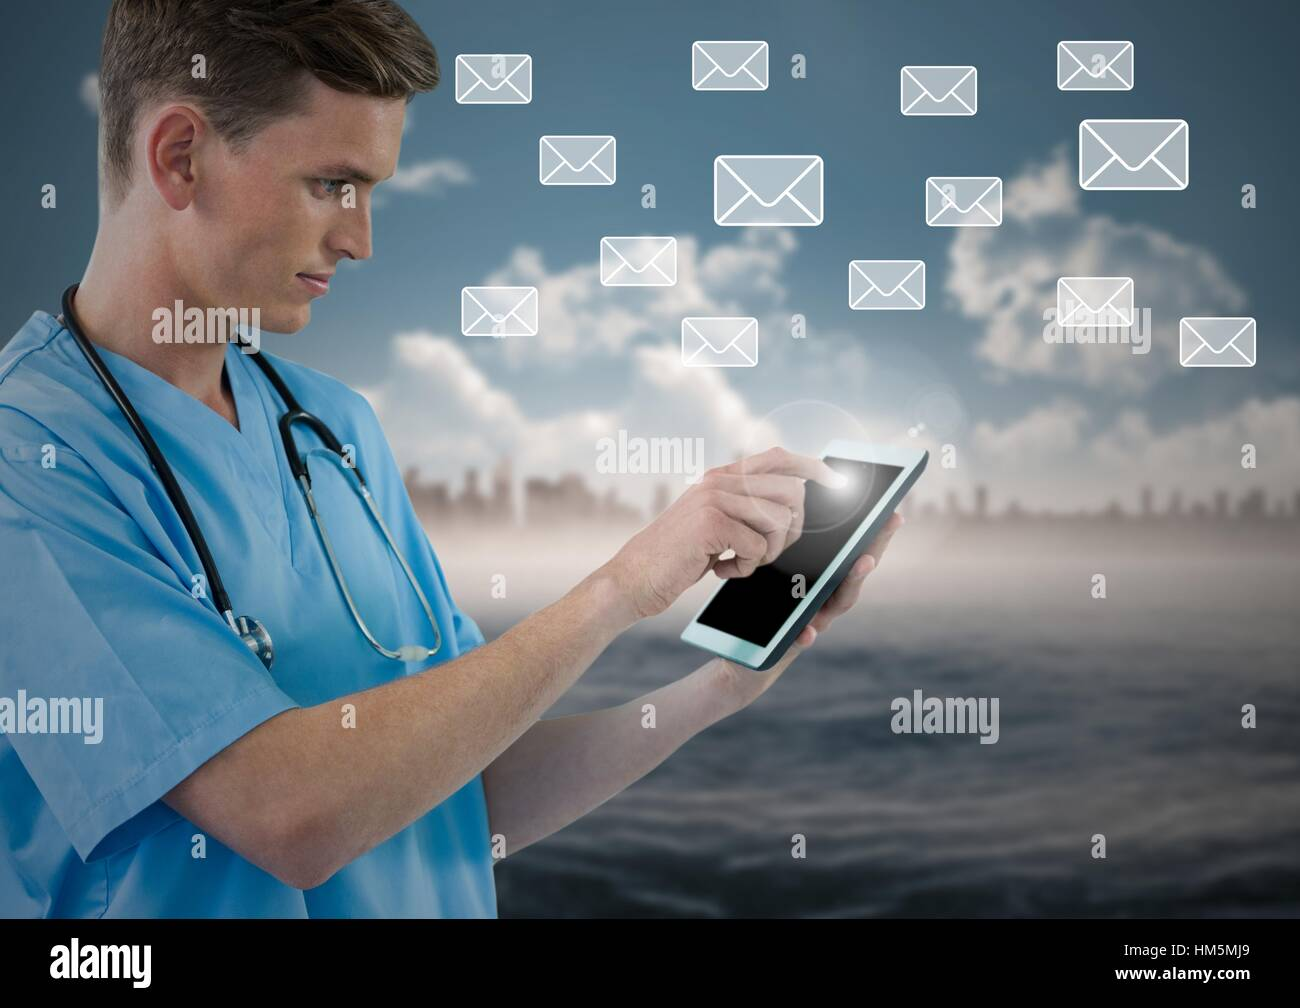 Doctor using digital tablet with digitally generated message icons - Stock Image